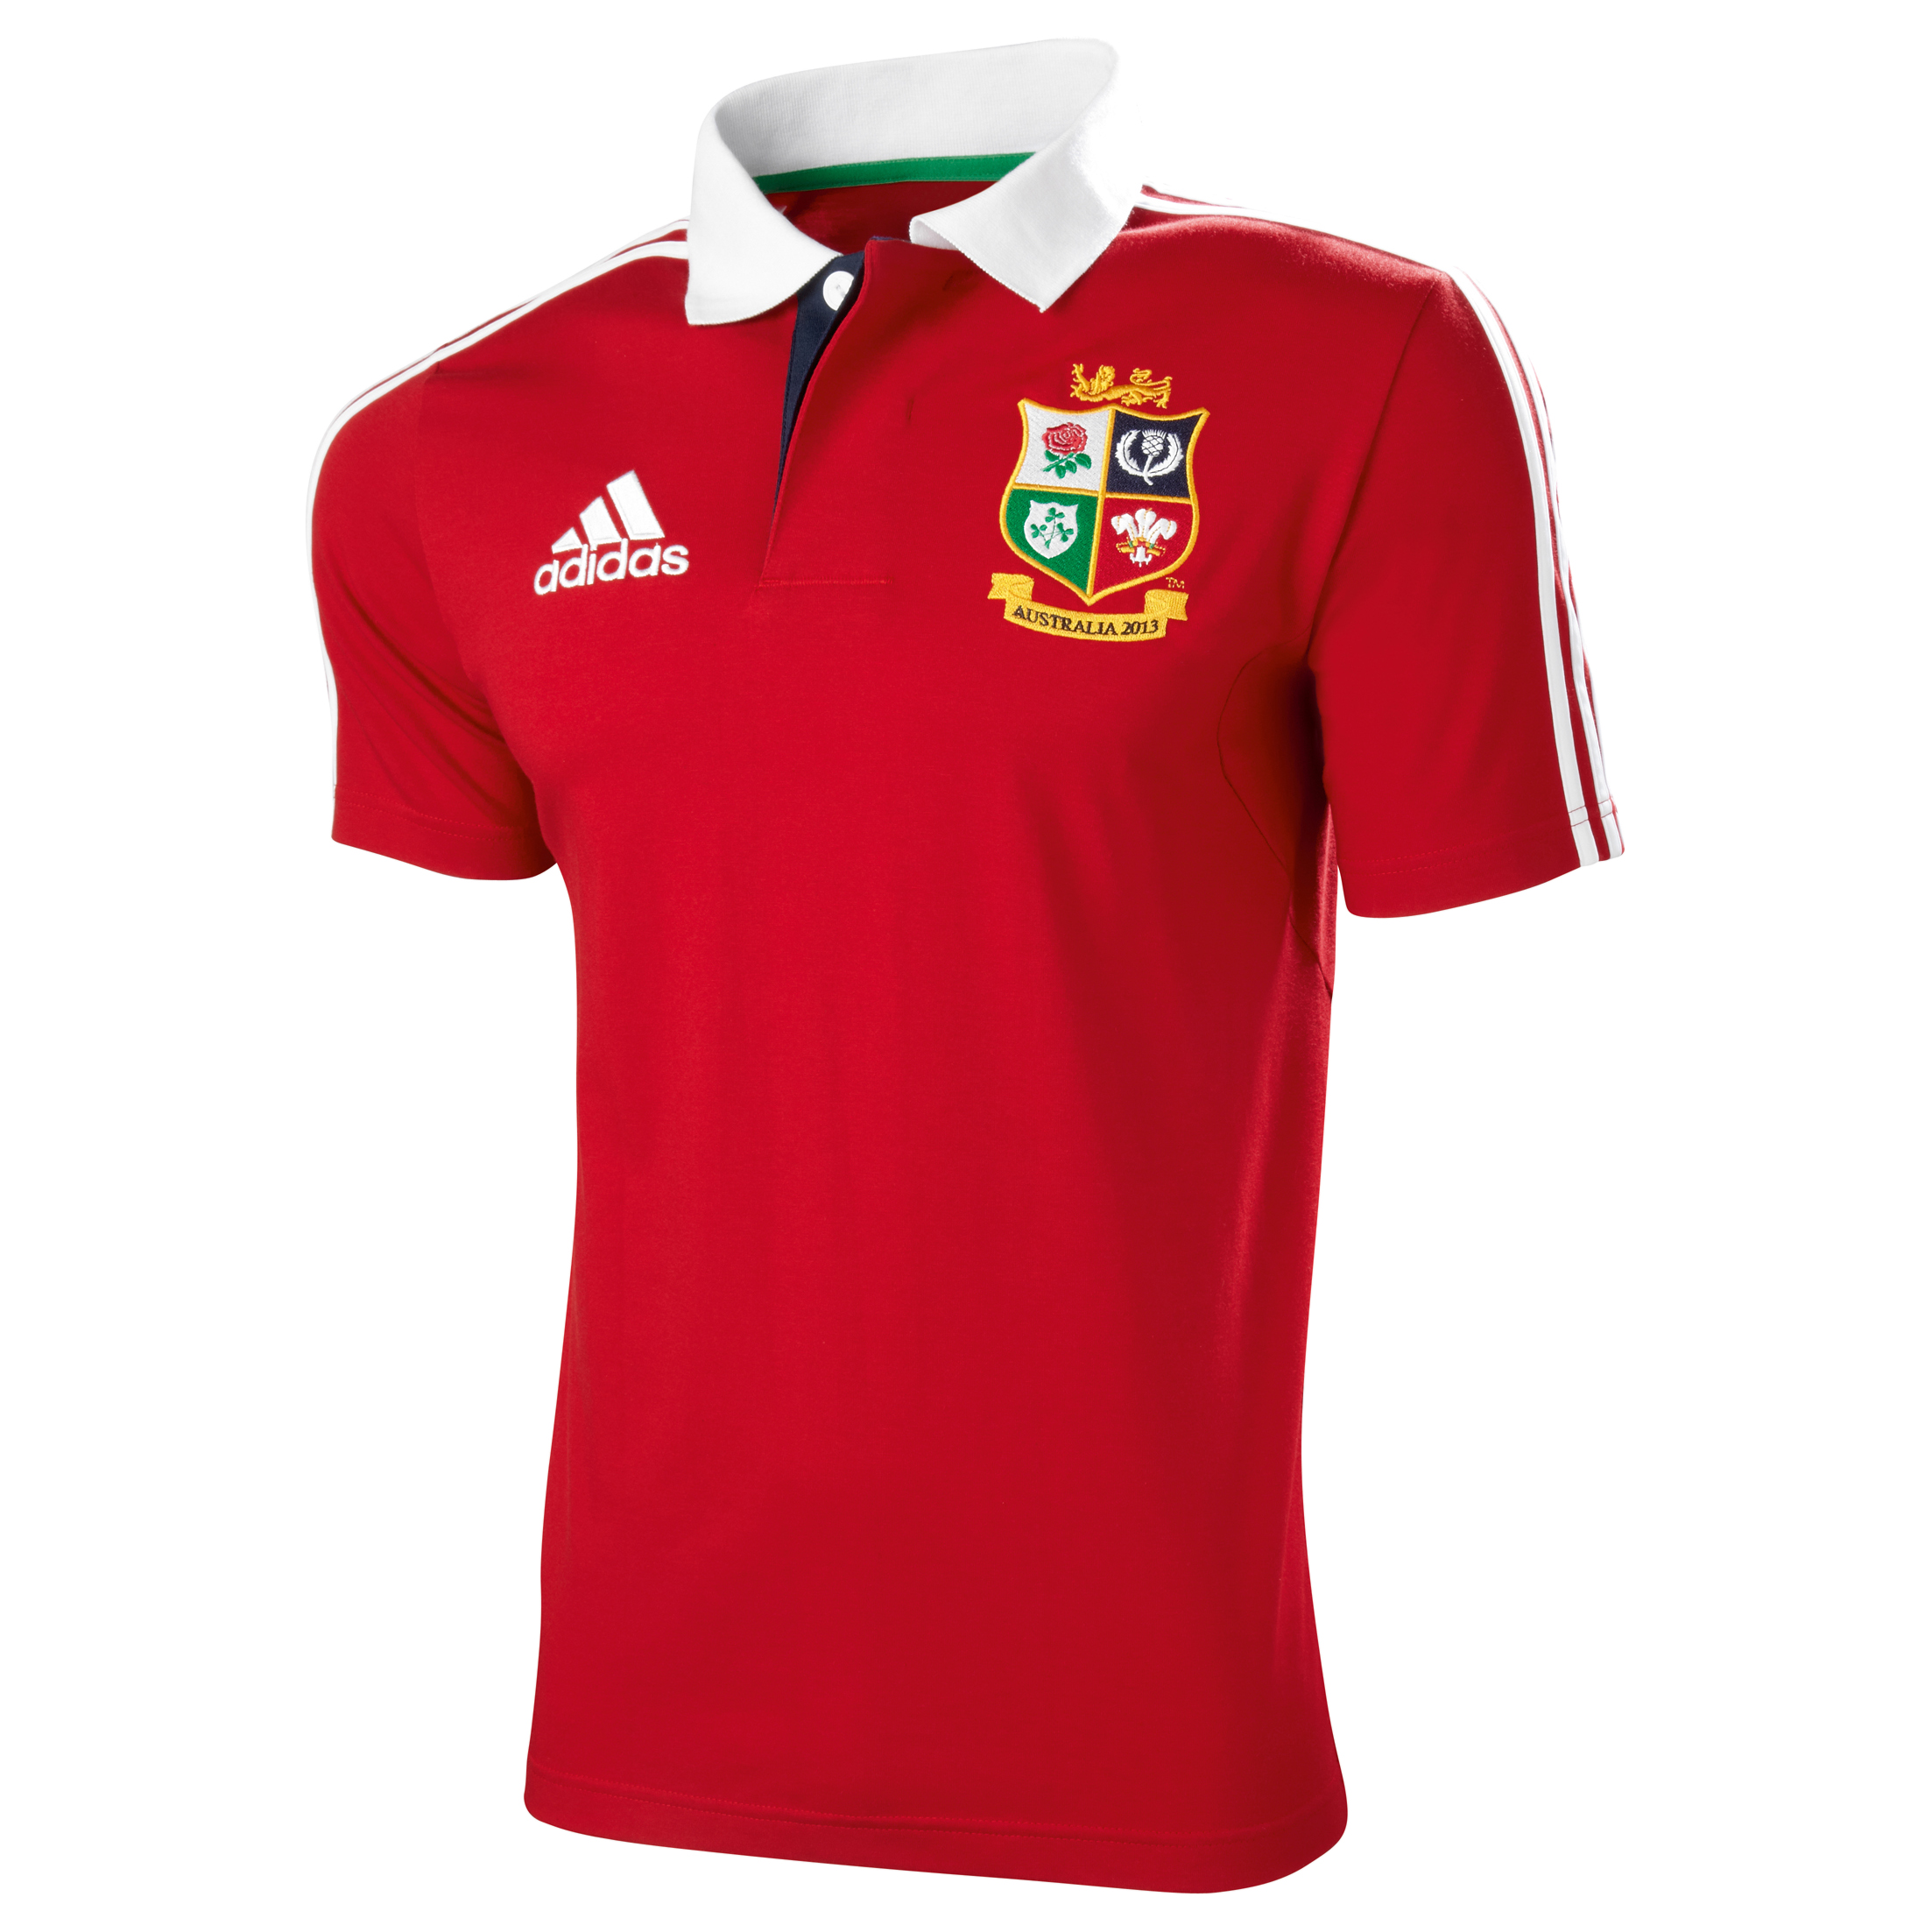 adidas British and Irish Lions Polo - University Red/White